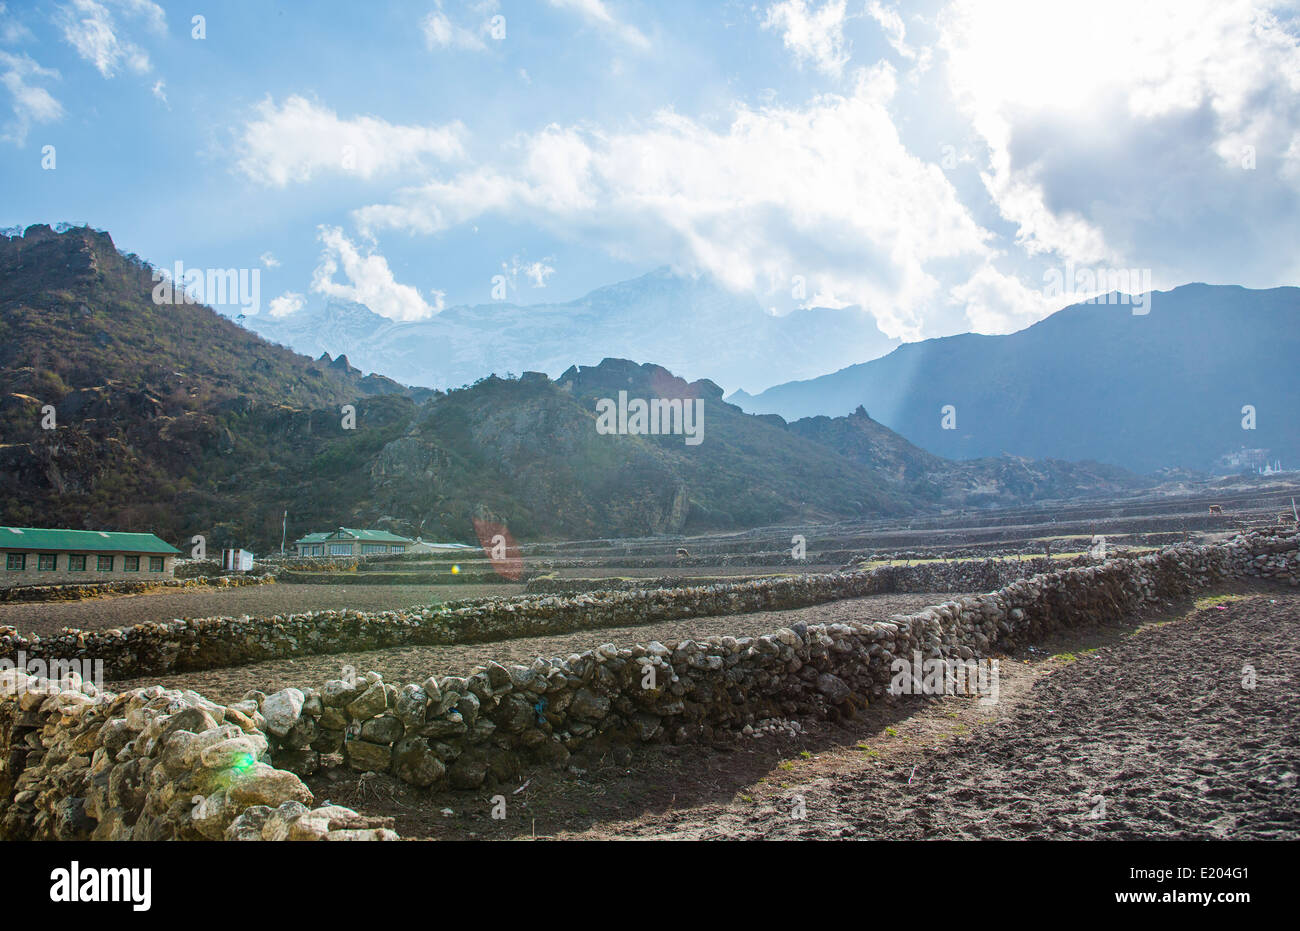 Nepal Farming fields divided by stone walls in the village of Khumjung, remote, Mt everest, Himalayas - Stock Image